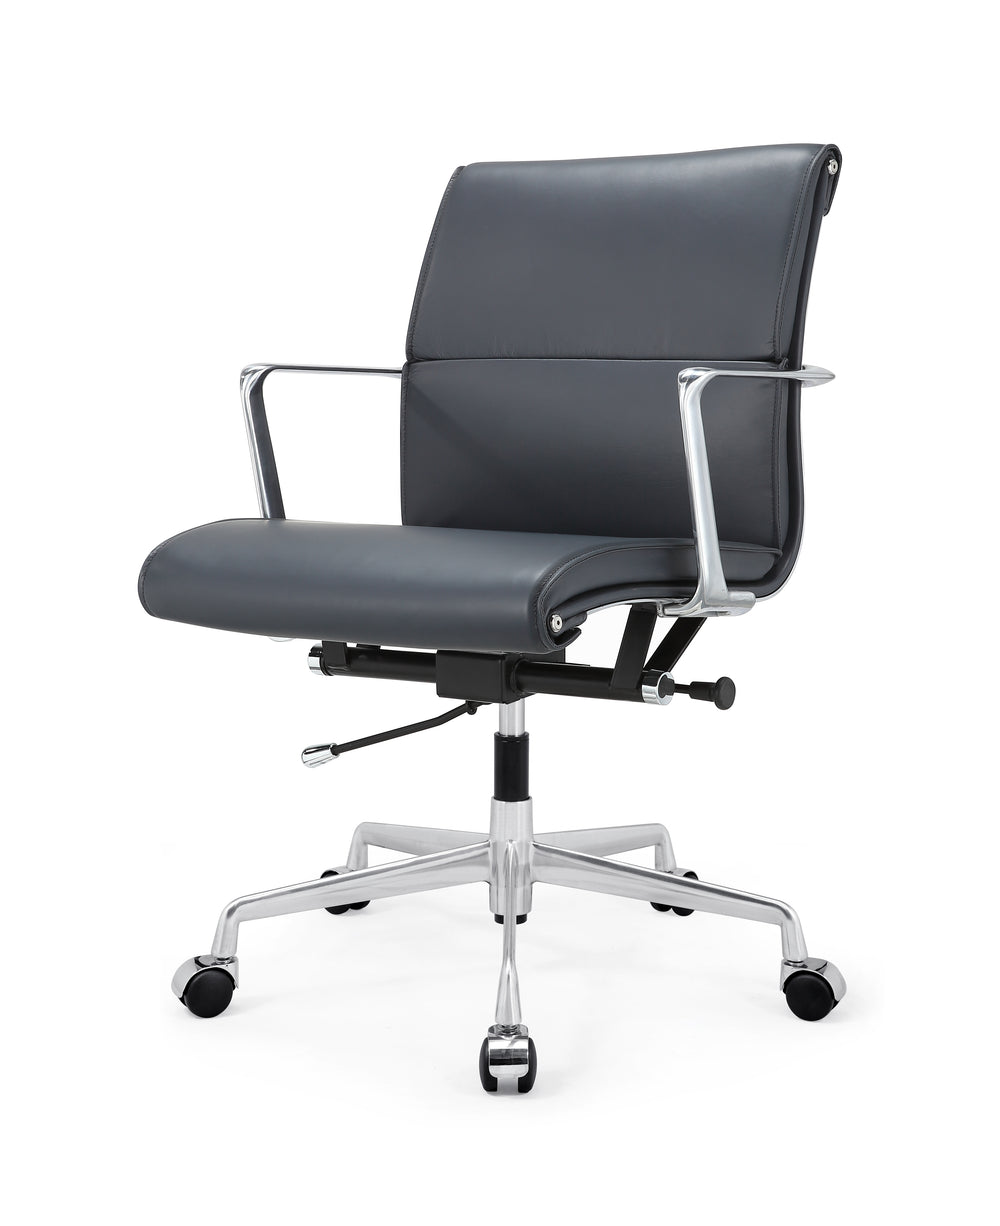 M347 Office Chair In Italian Leather